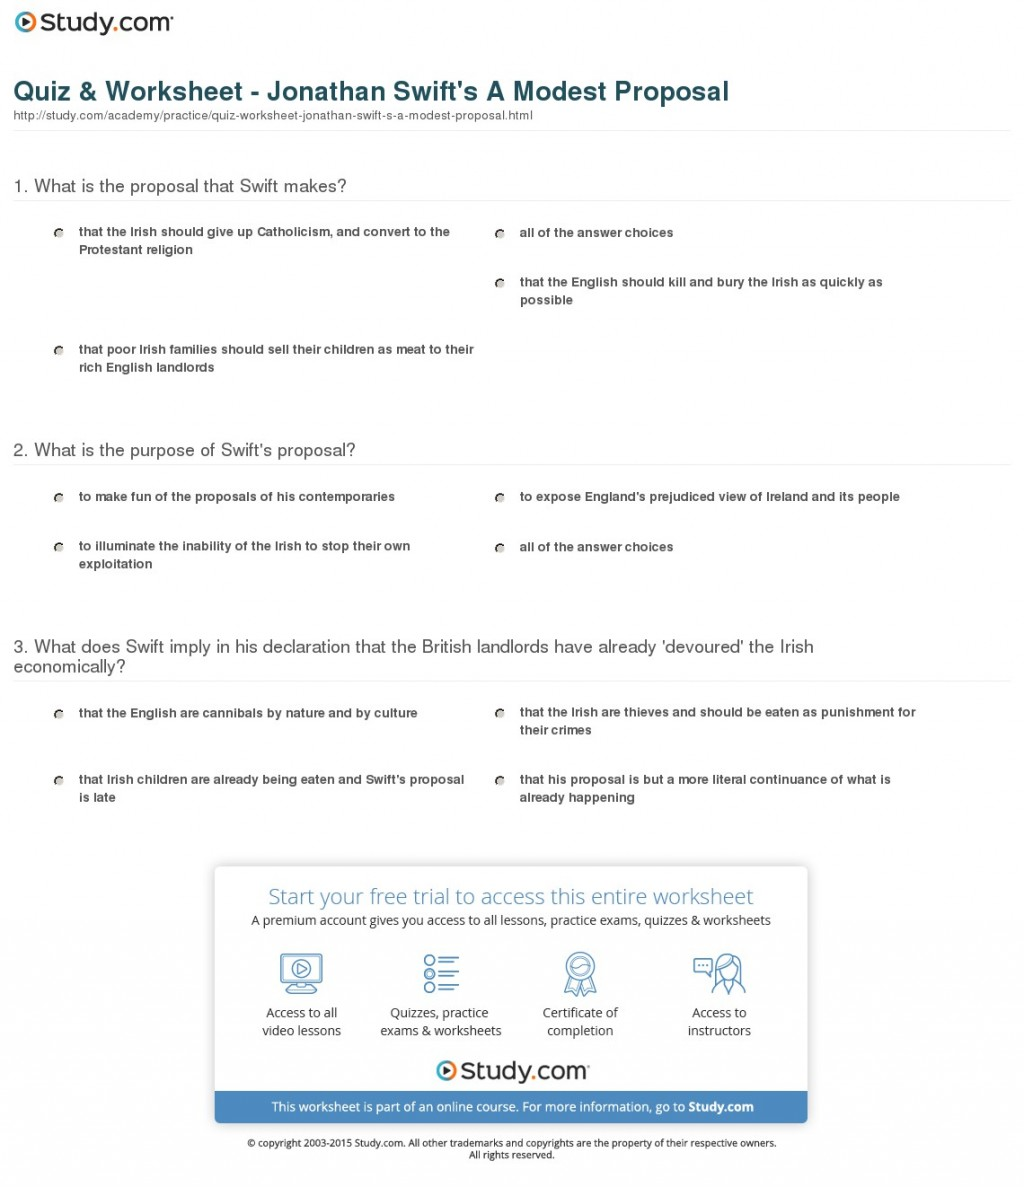 004 Essay Example Quiz Worksheet Jonathan Swift S Modest Astounding A Proposal 50 Essays Questions Large